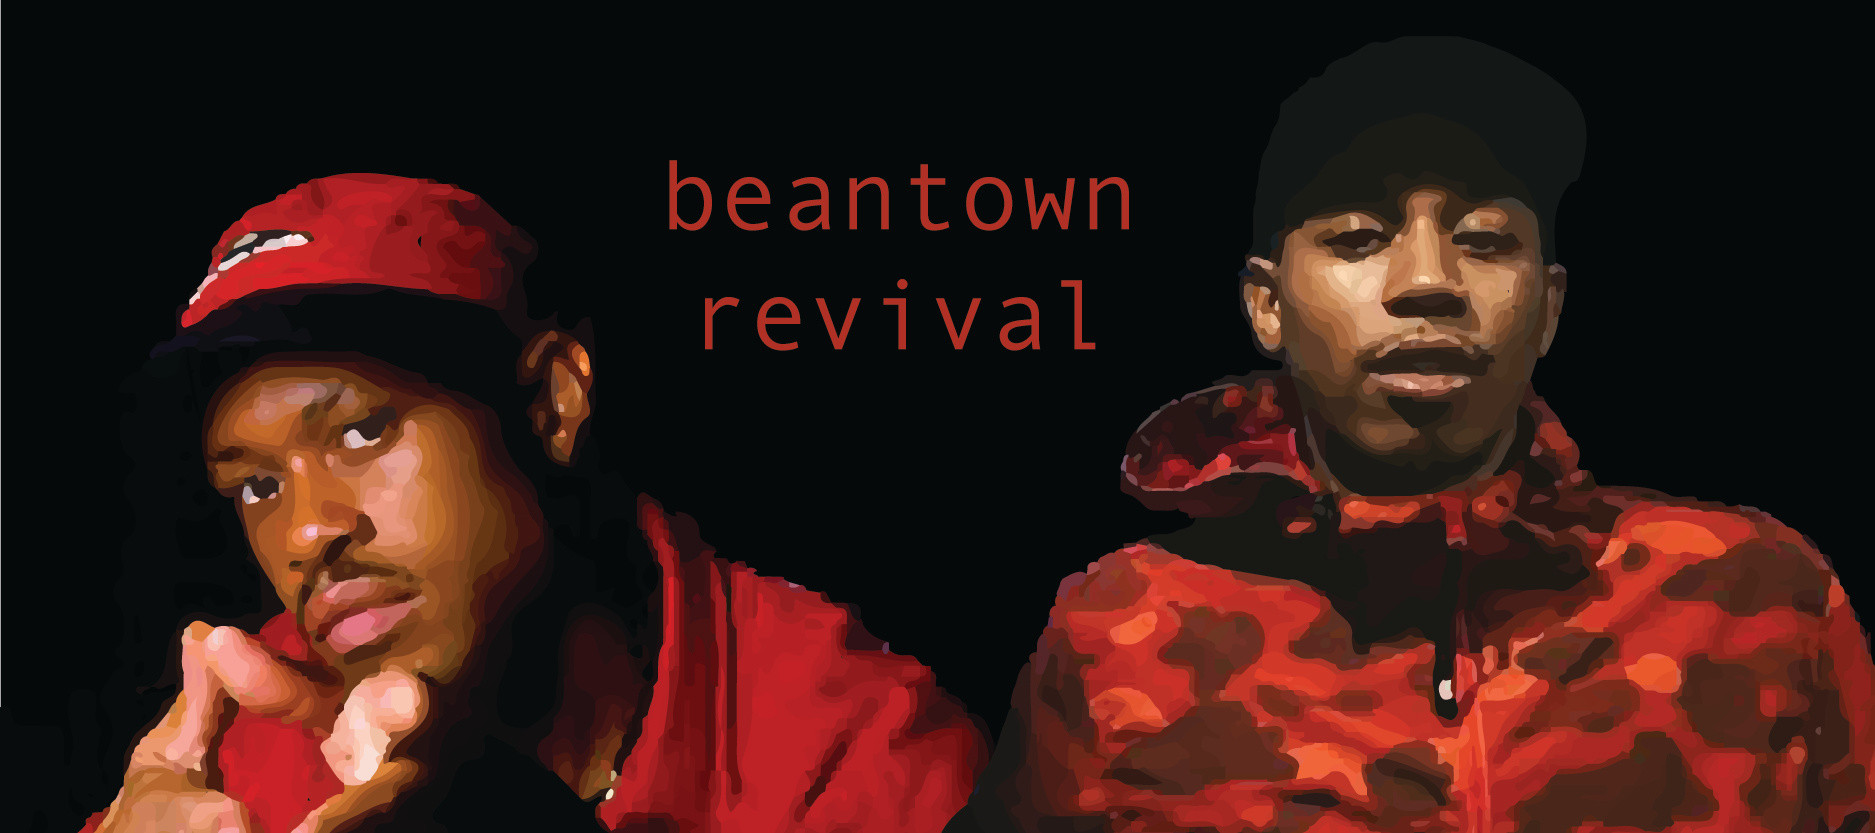 Beantown Revival